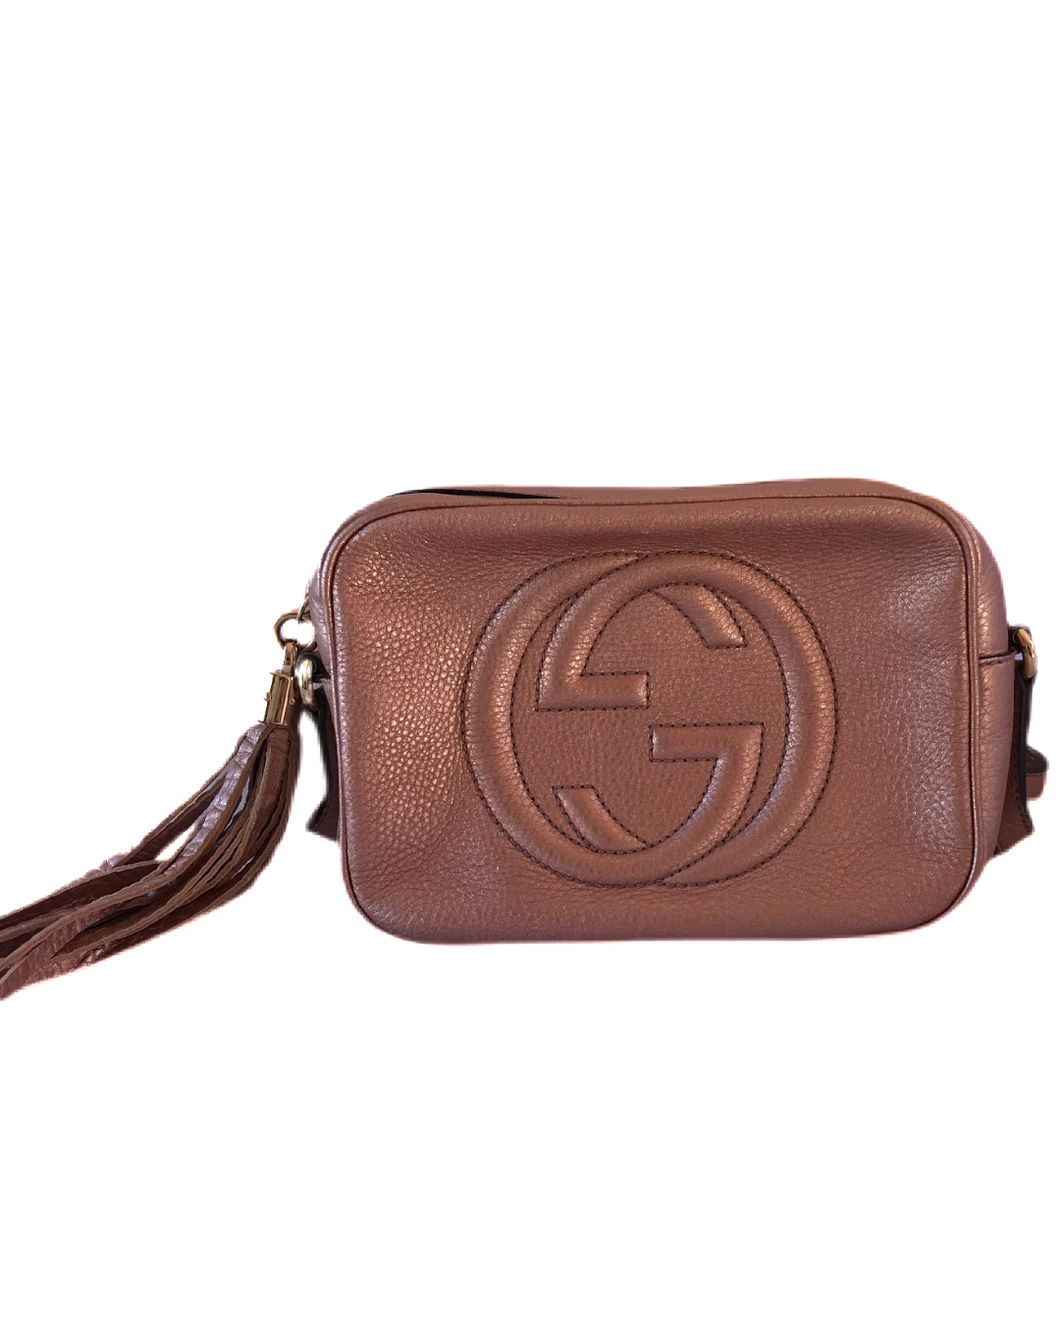 Gucci Soho Disco- Metallic Rose Gold